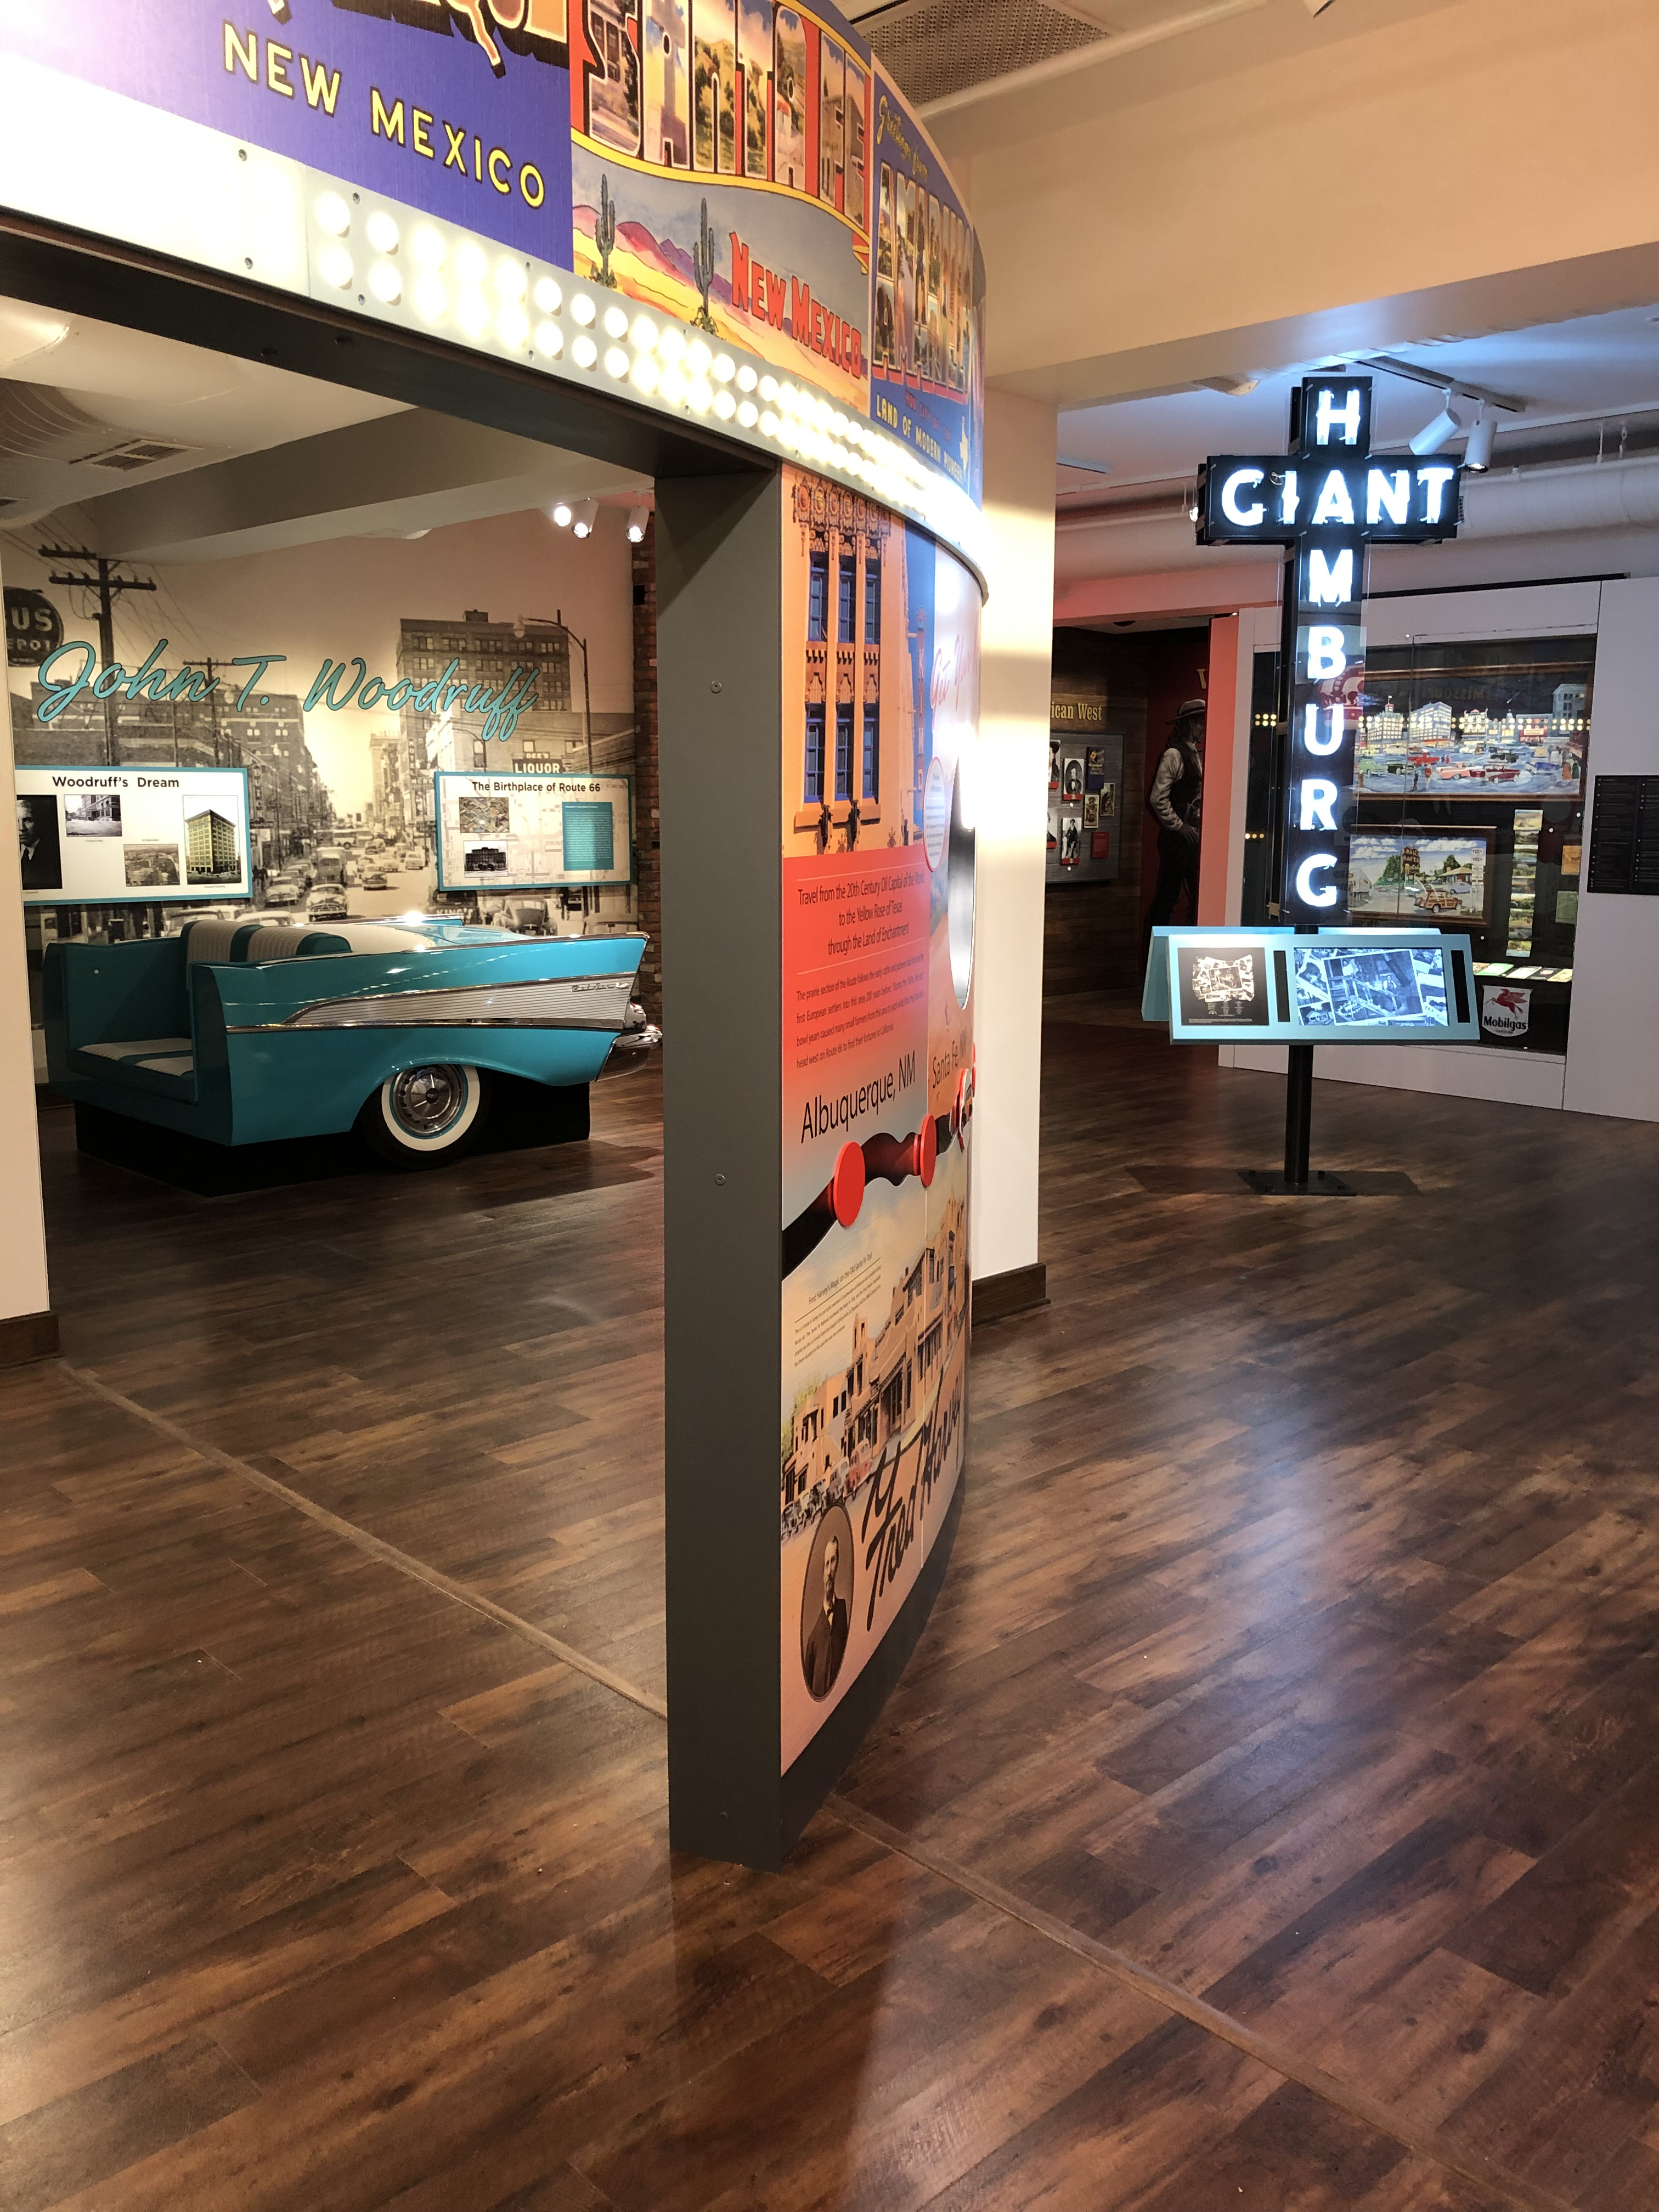 Explore Route 66 on national and local levels